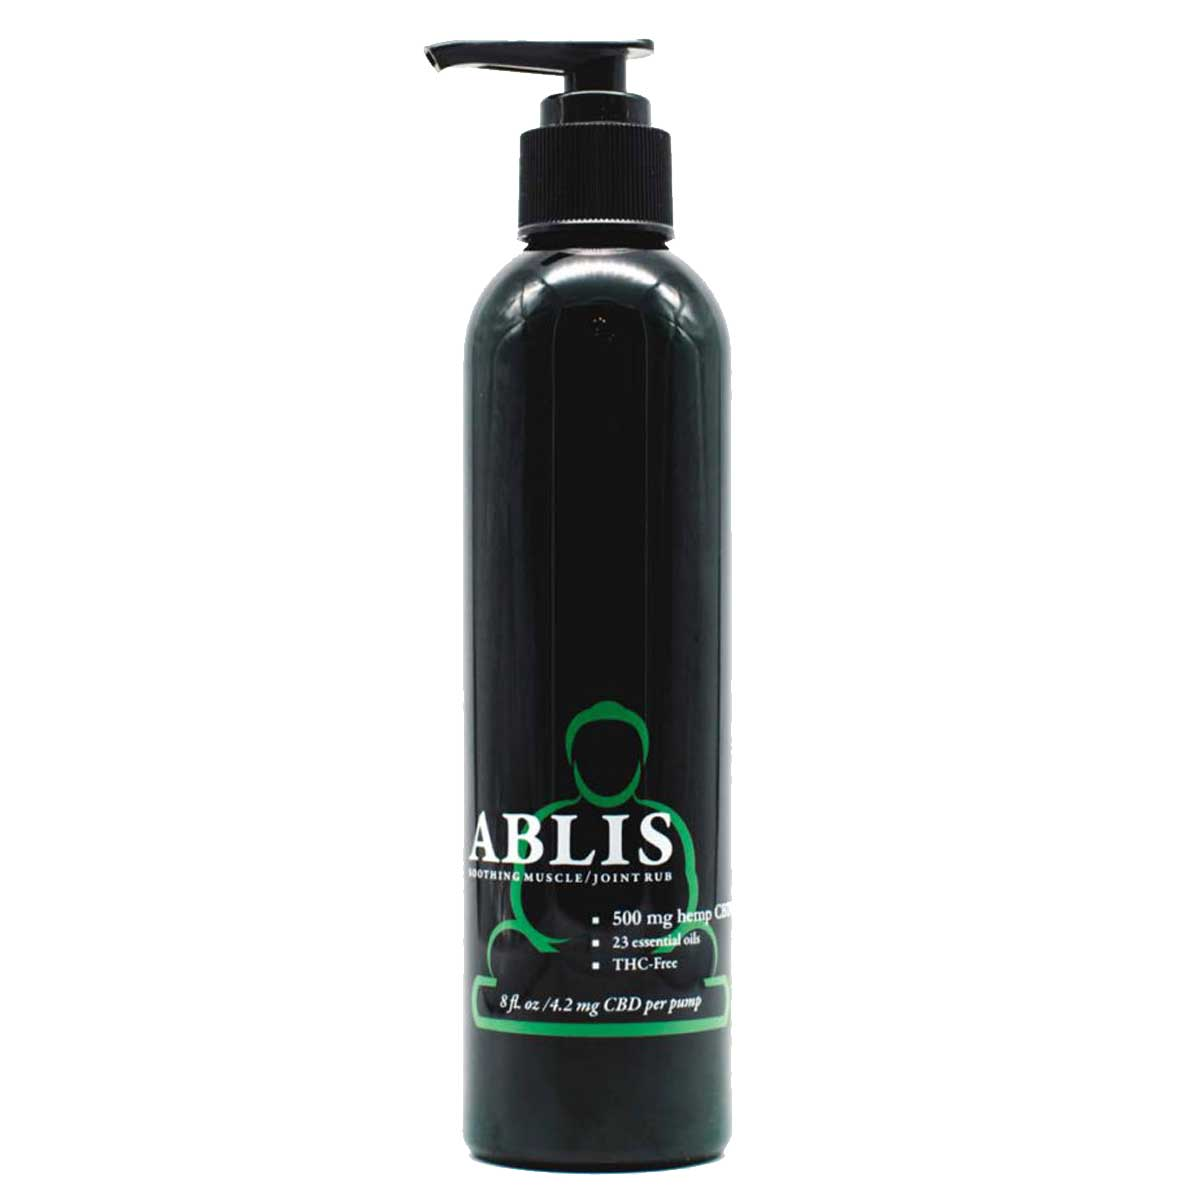 Ablis Soothing Muscle/Joint Rub - CBD Hemp Store, The #1 Trusted Source for CBD Oil, Vape Oil, CBD Edibles, CBD Lotions, CBD Topicals